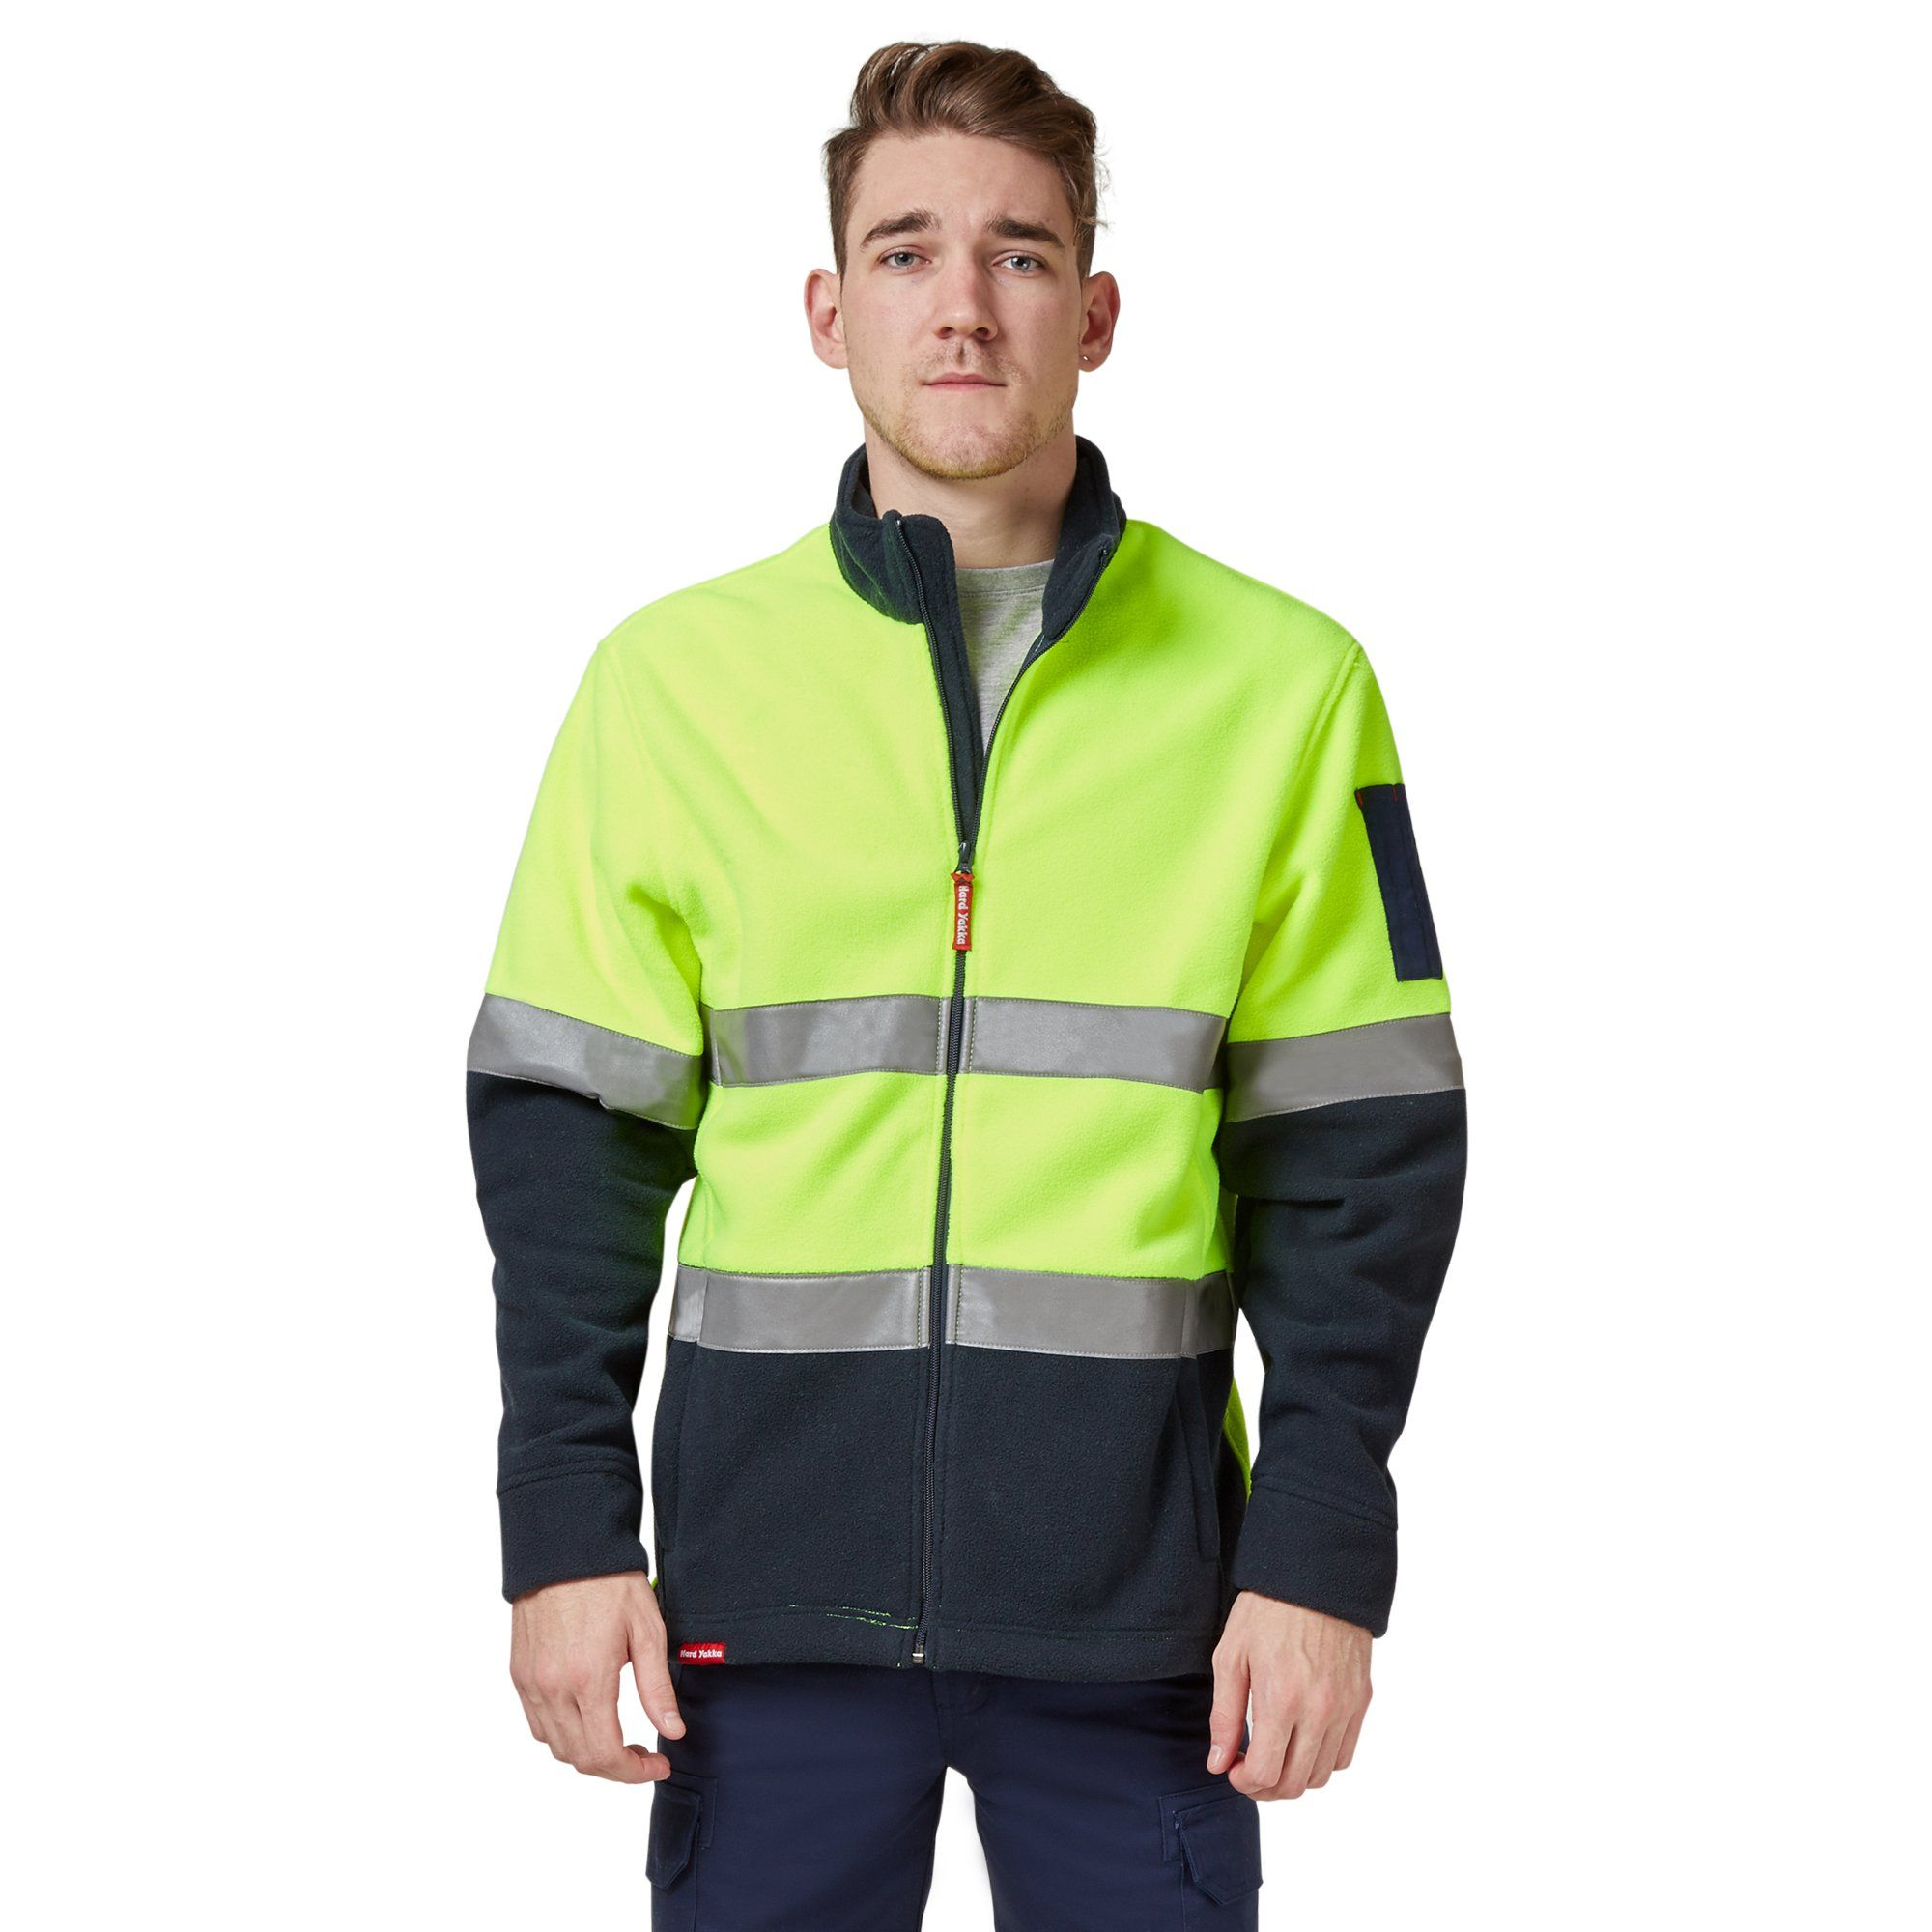 Hard Yakka Men's Hi-Vis Polar Fleece Jumper With Tape - Yellow/Navy Workwear Isbister & Co Wholesale